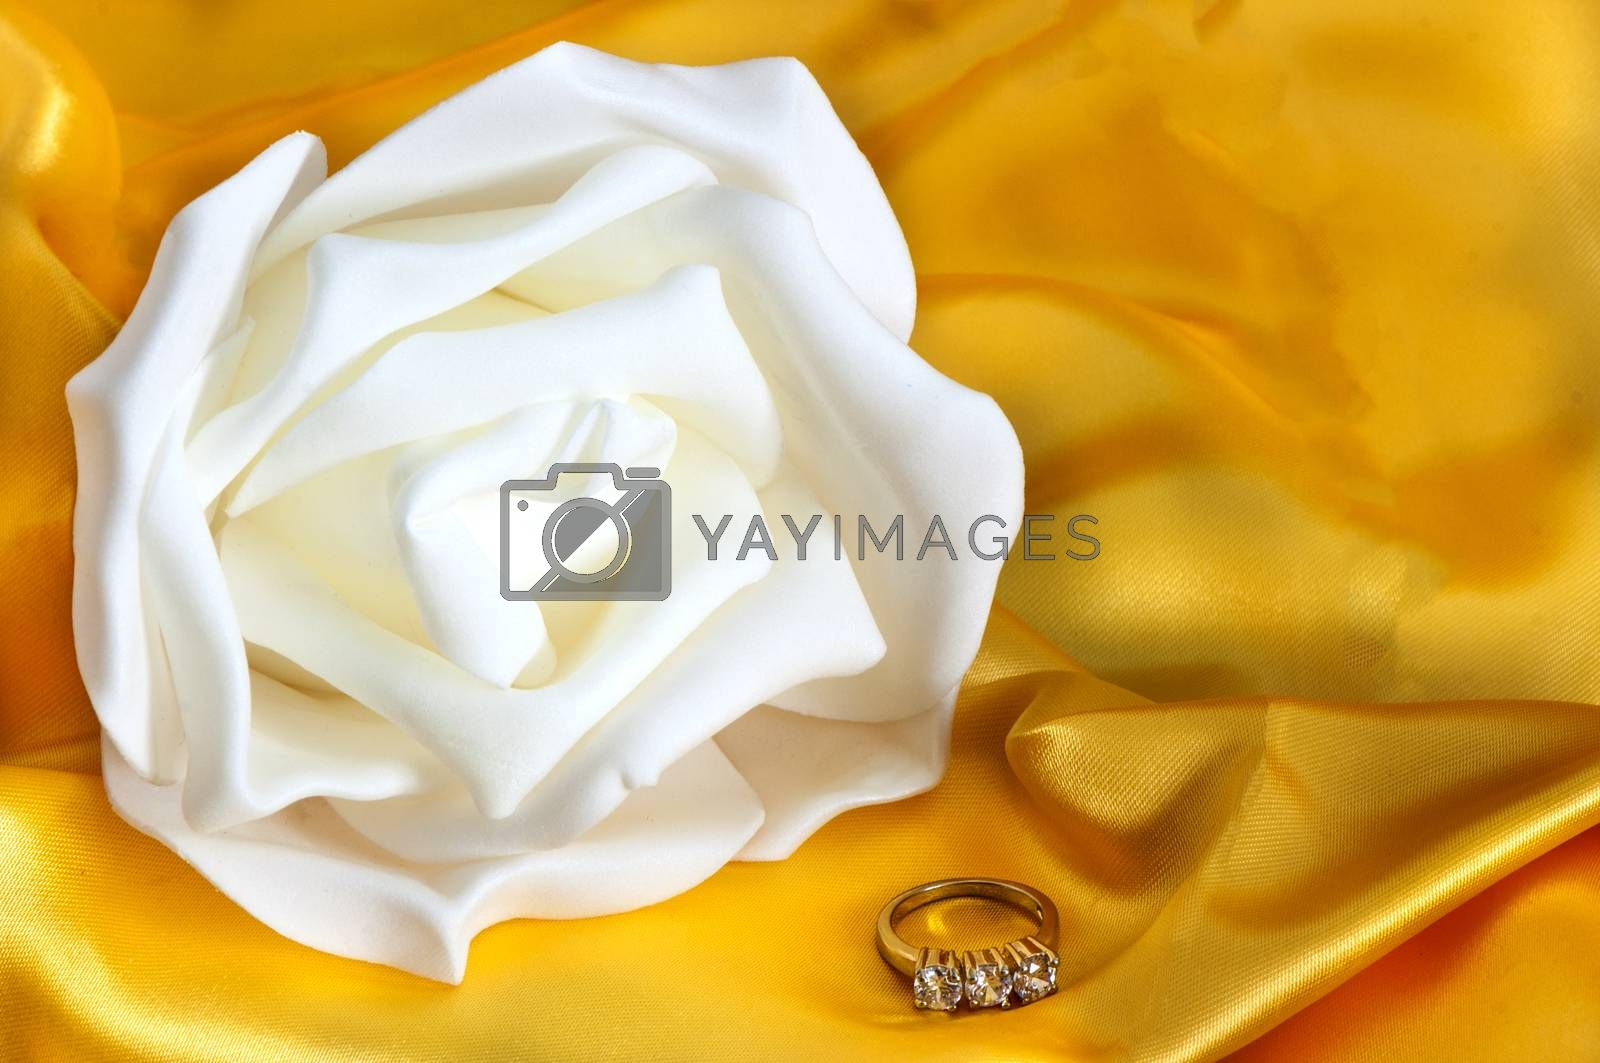 wedding rings on  a yellow fabric background